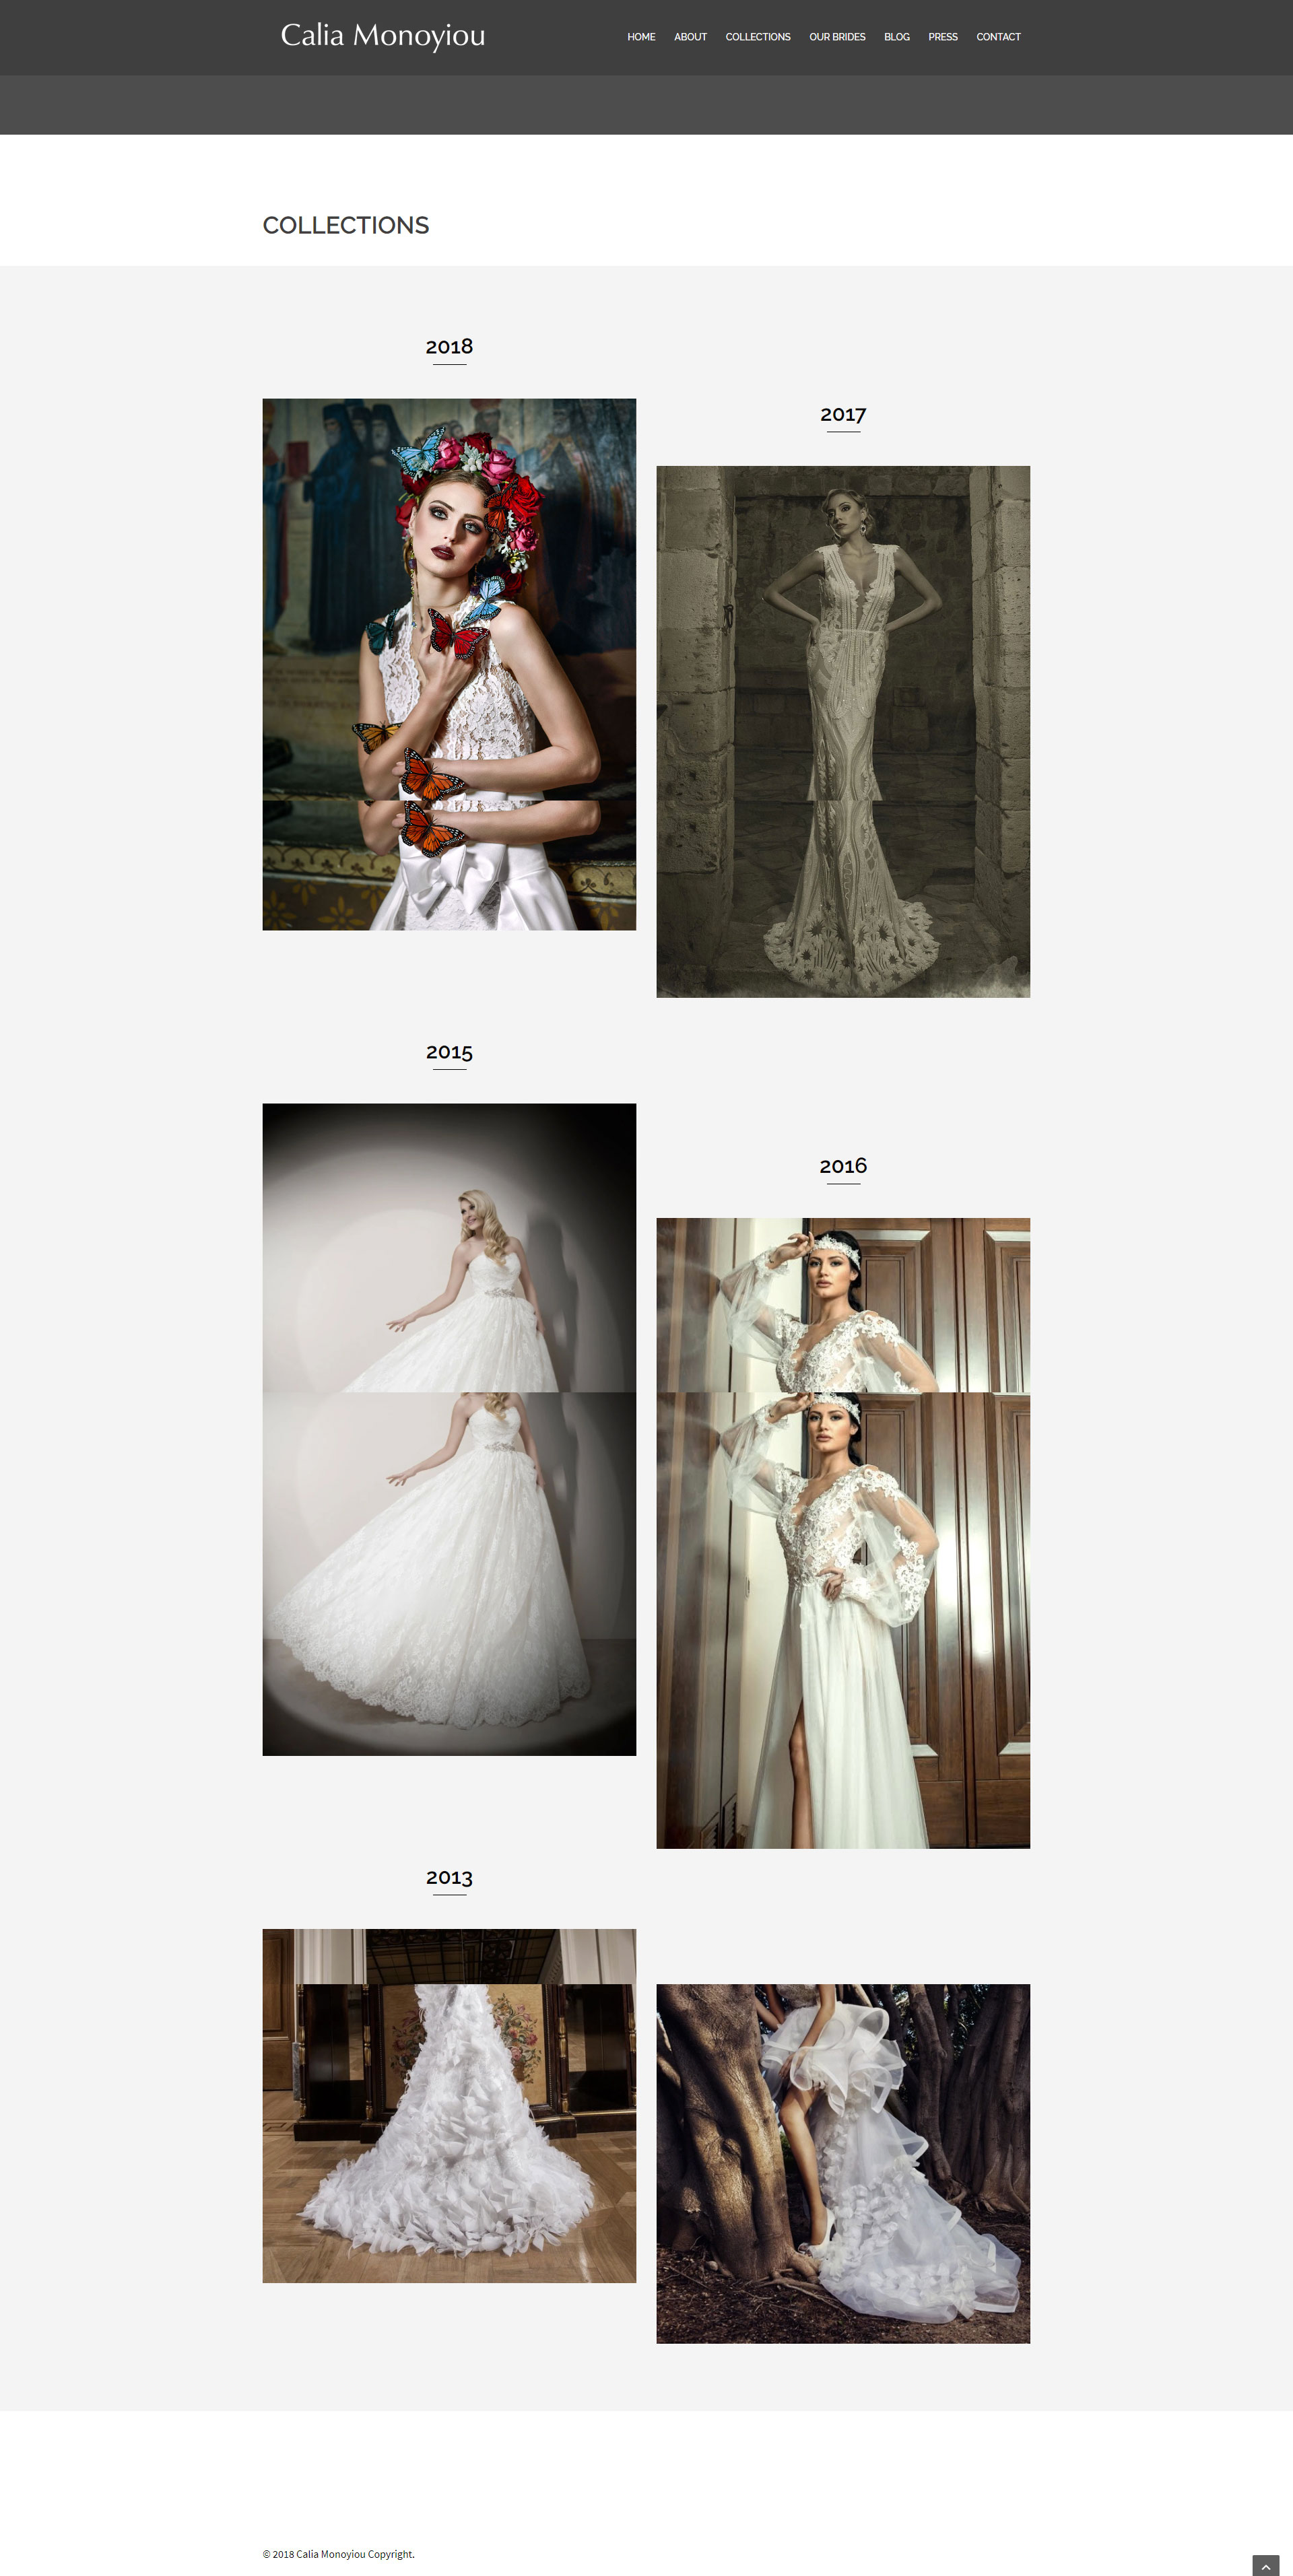 calia-monoyiou-website-collections